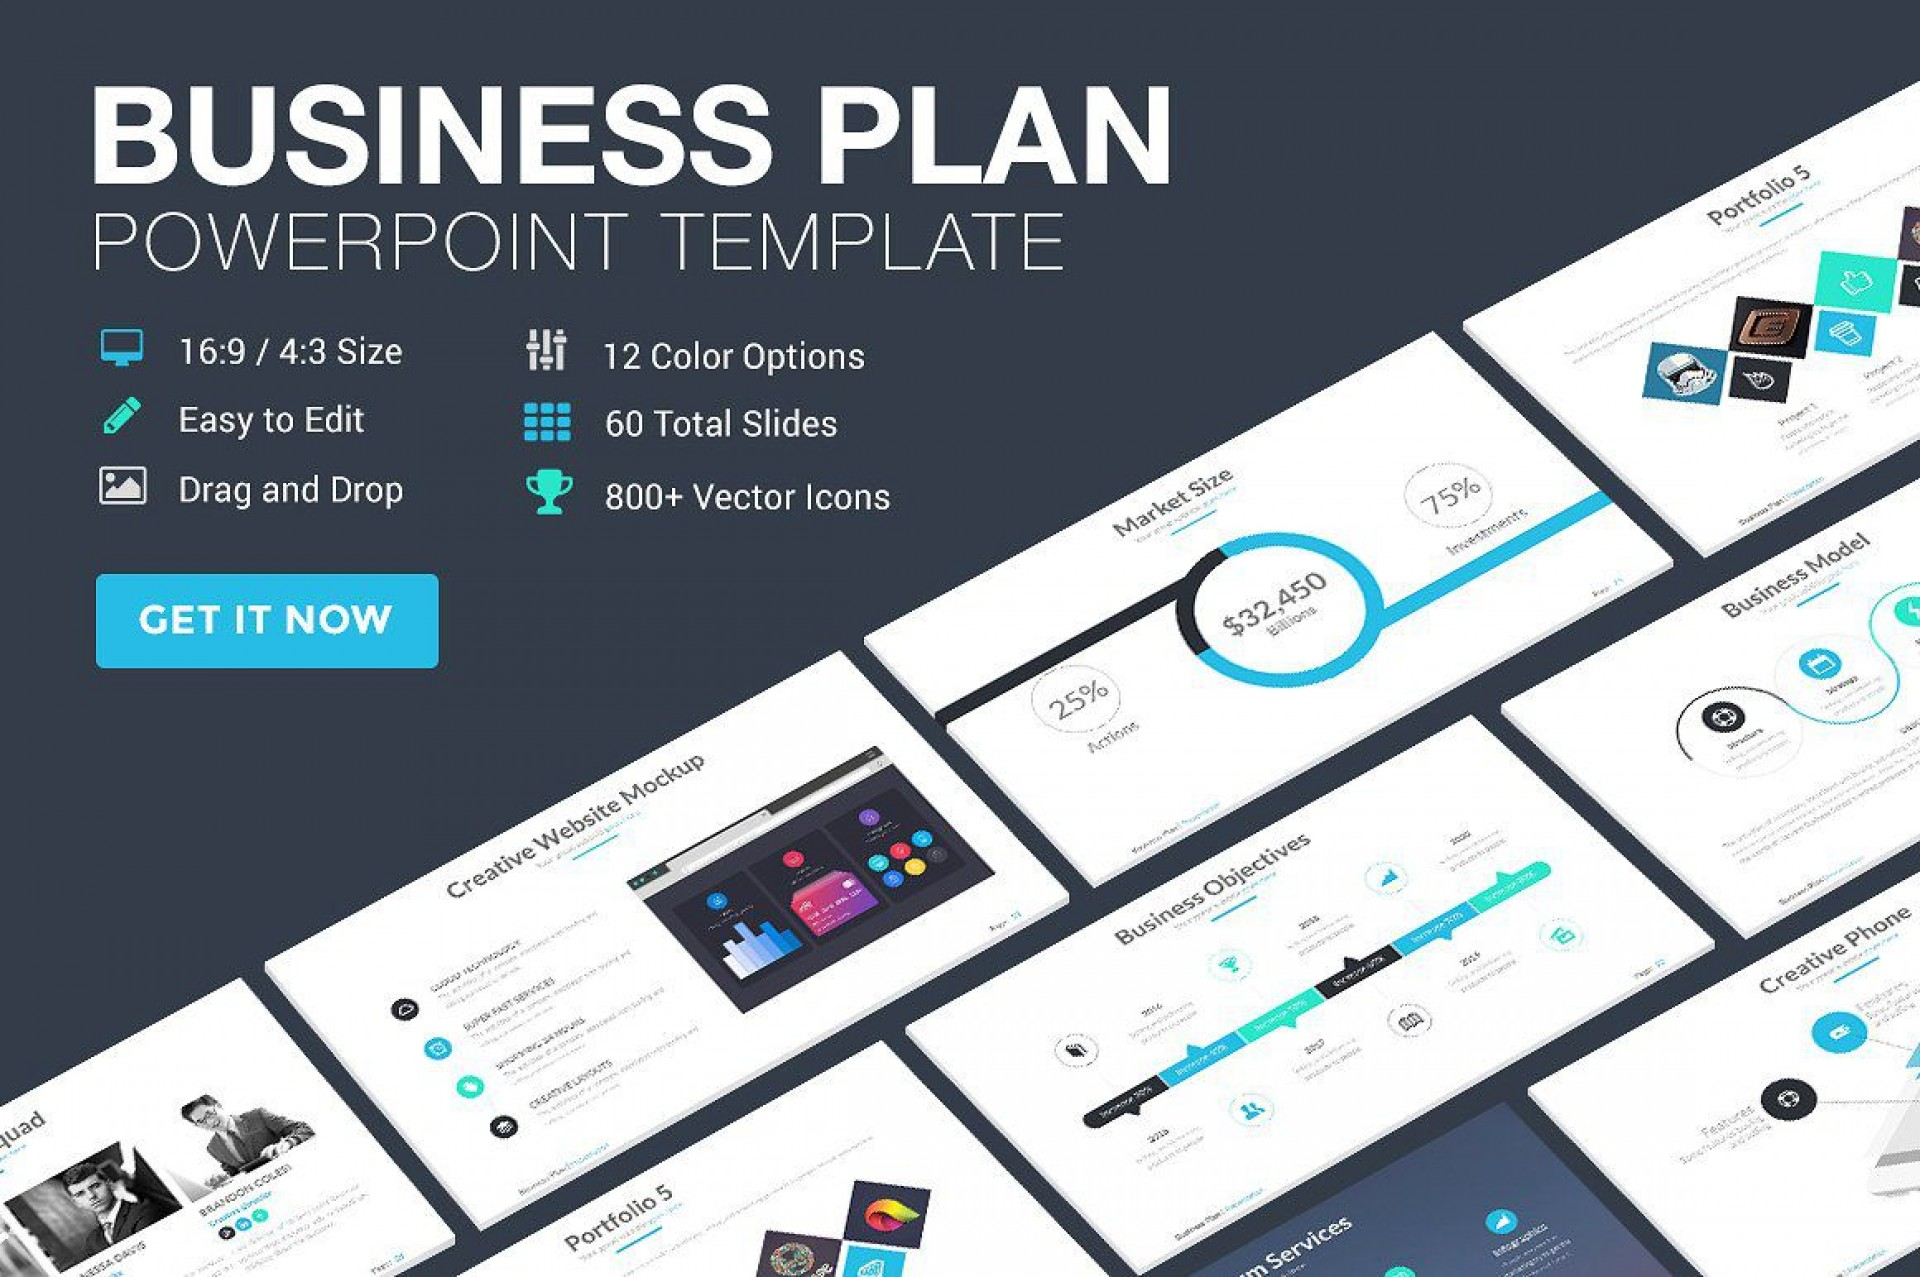 001 Beautiful Free Busines Plan Template Ppt High Resolution  2020 Download Startup 30 60 901920